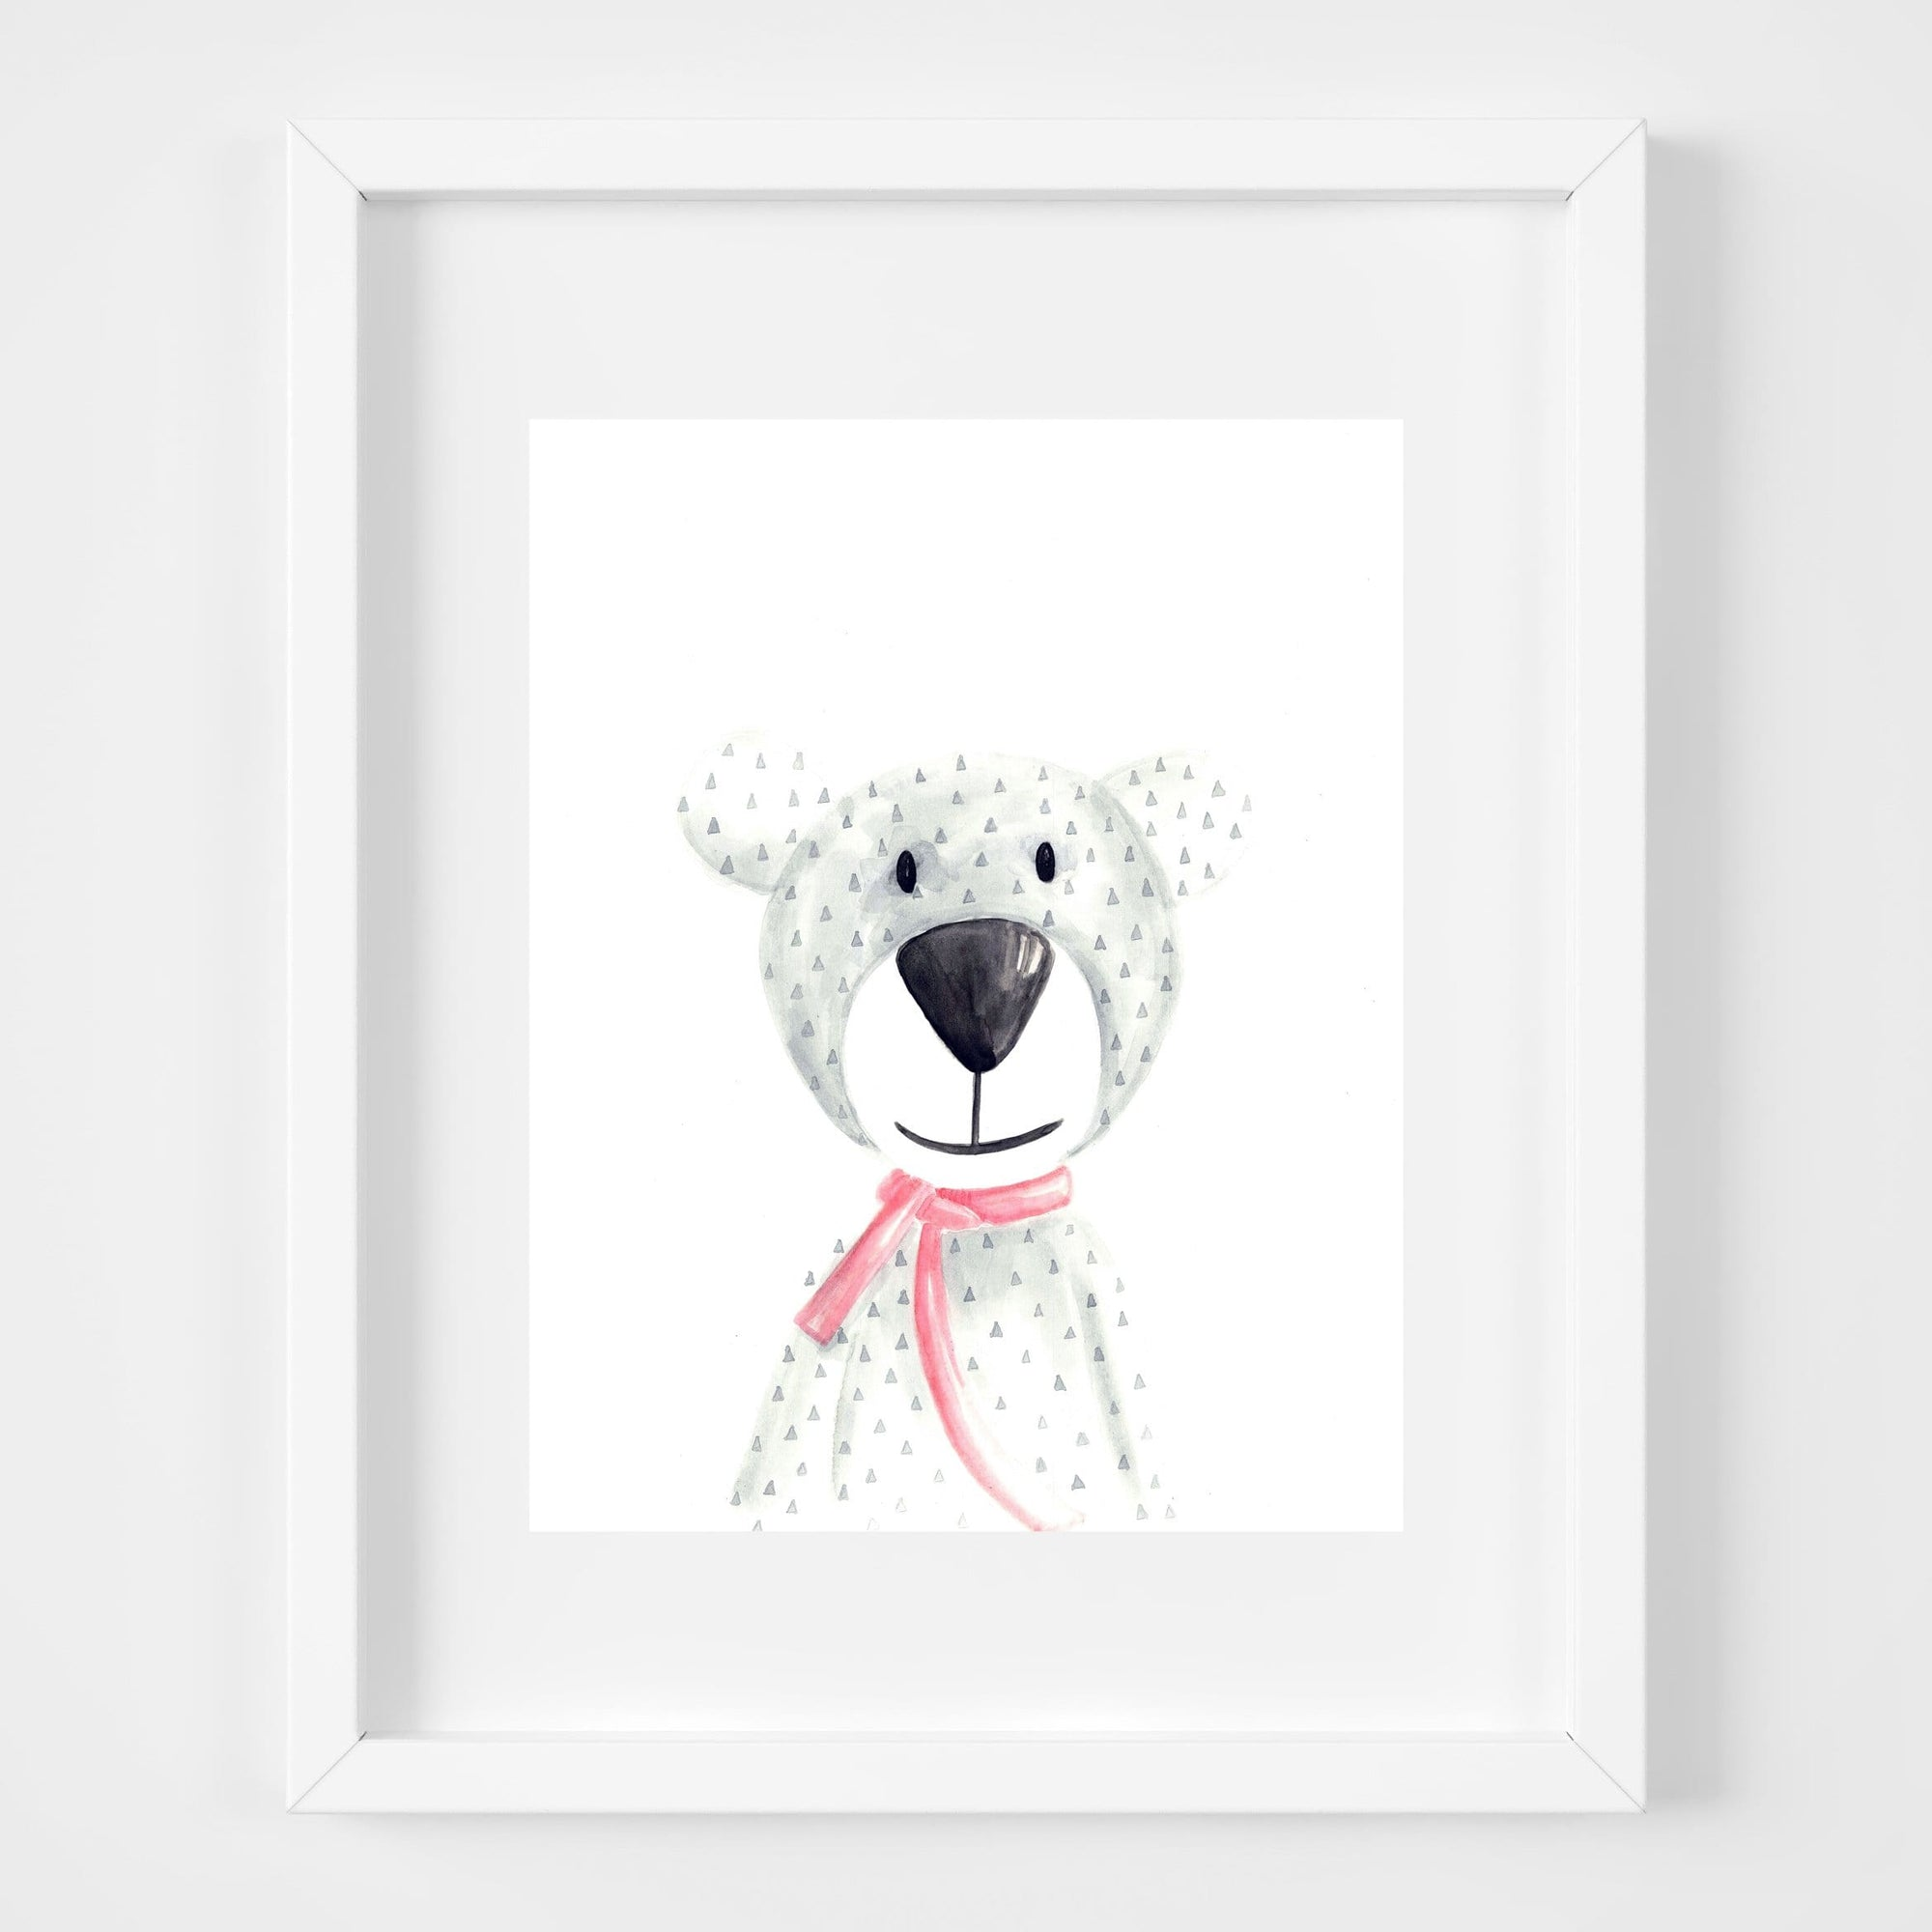 bebemoss.com Atty the bear print handmade by moms  gifts with purpose